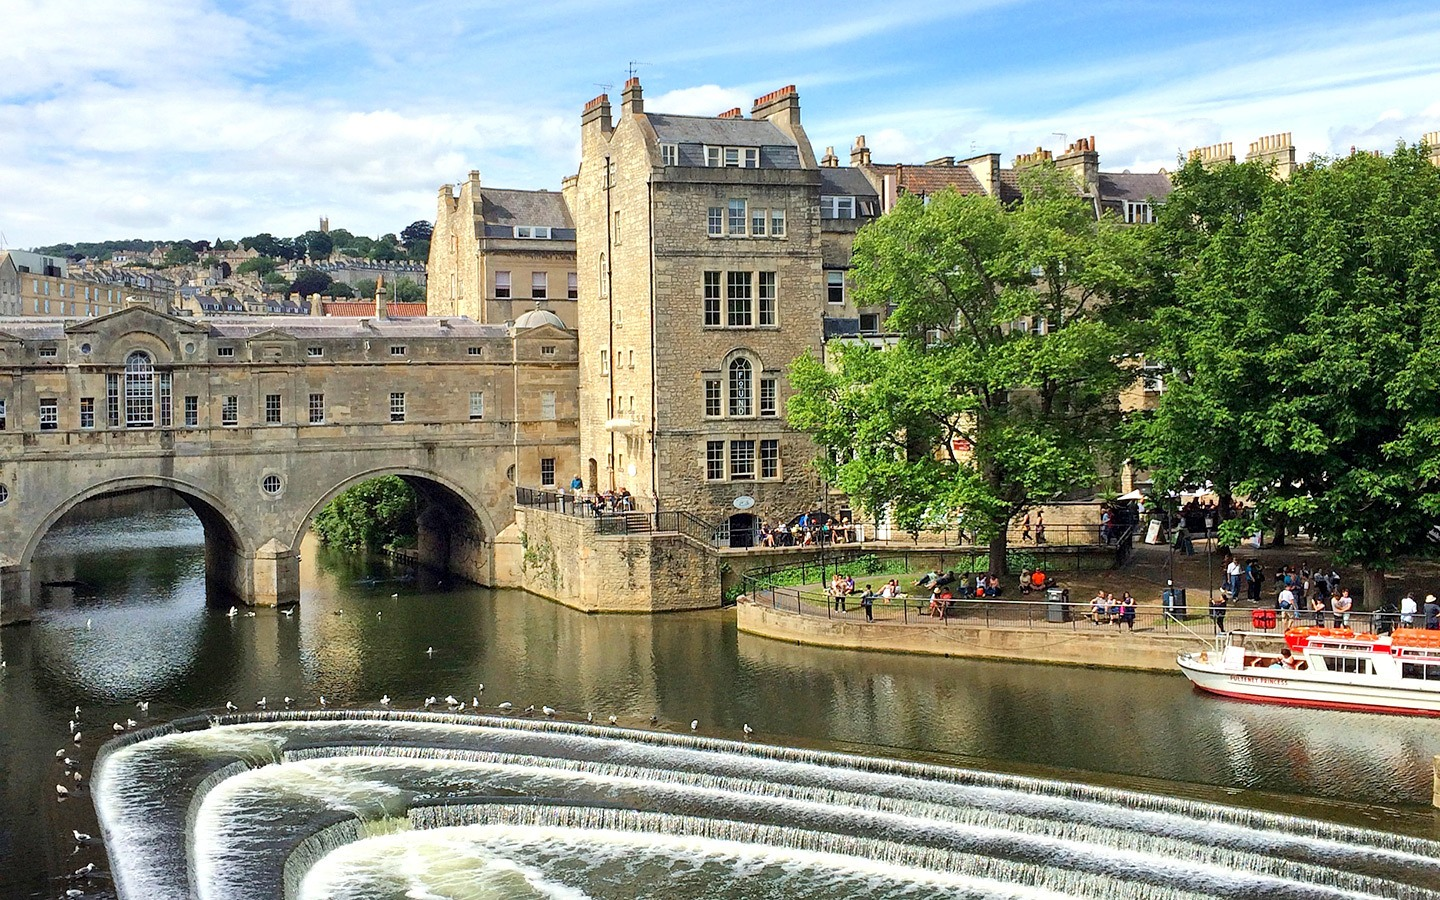 A weekend in Bath: A 48-hour itinerary